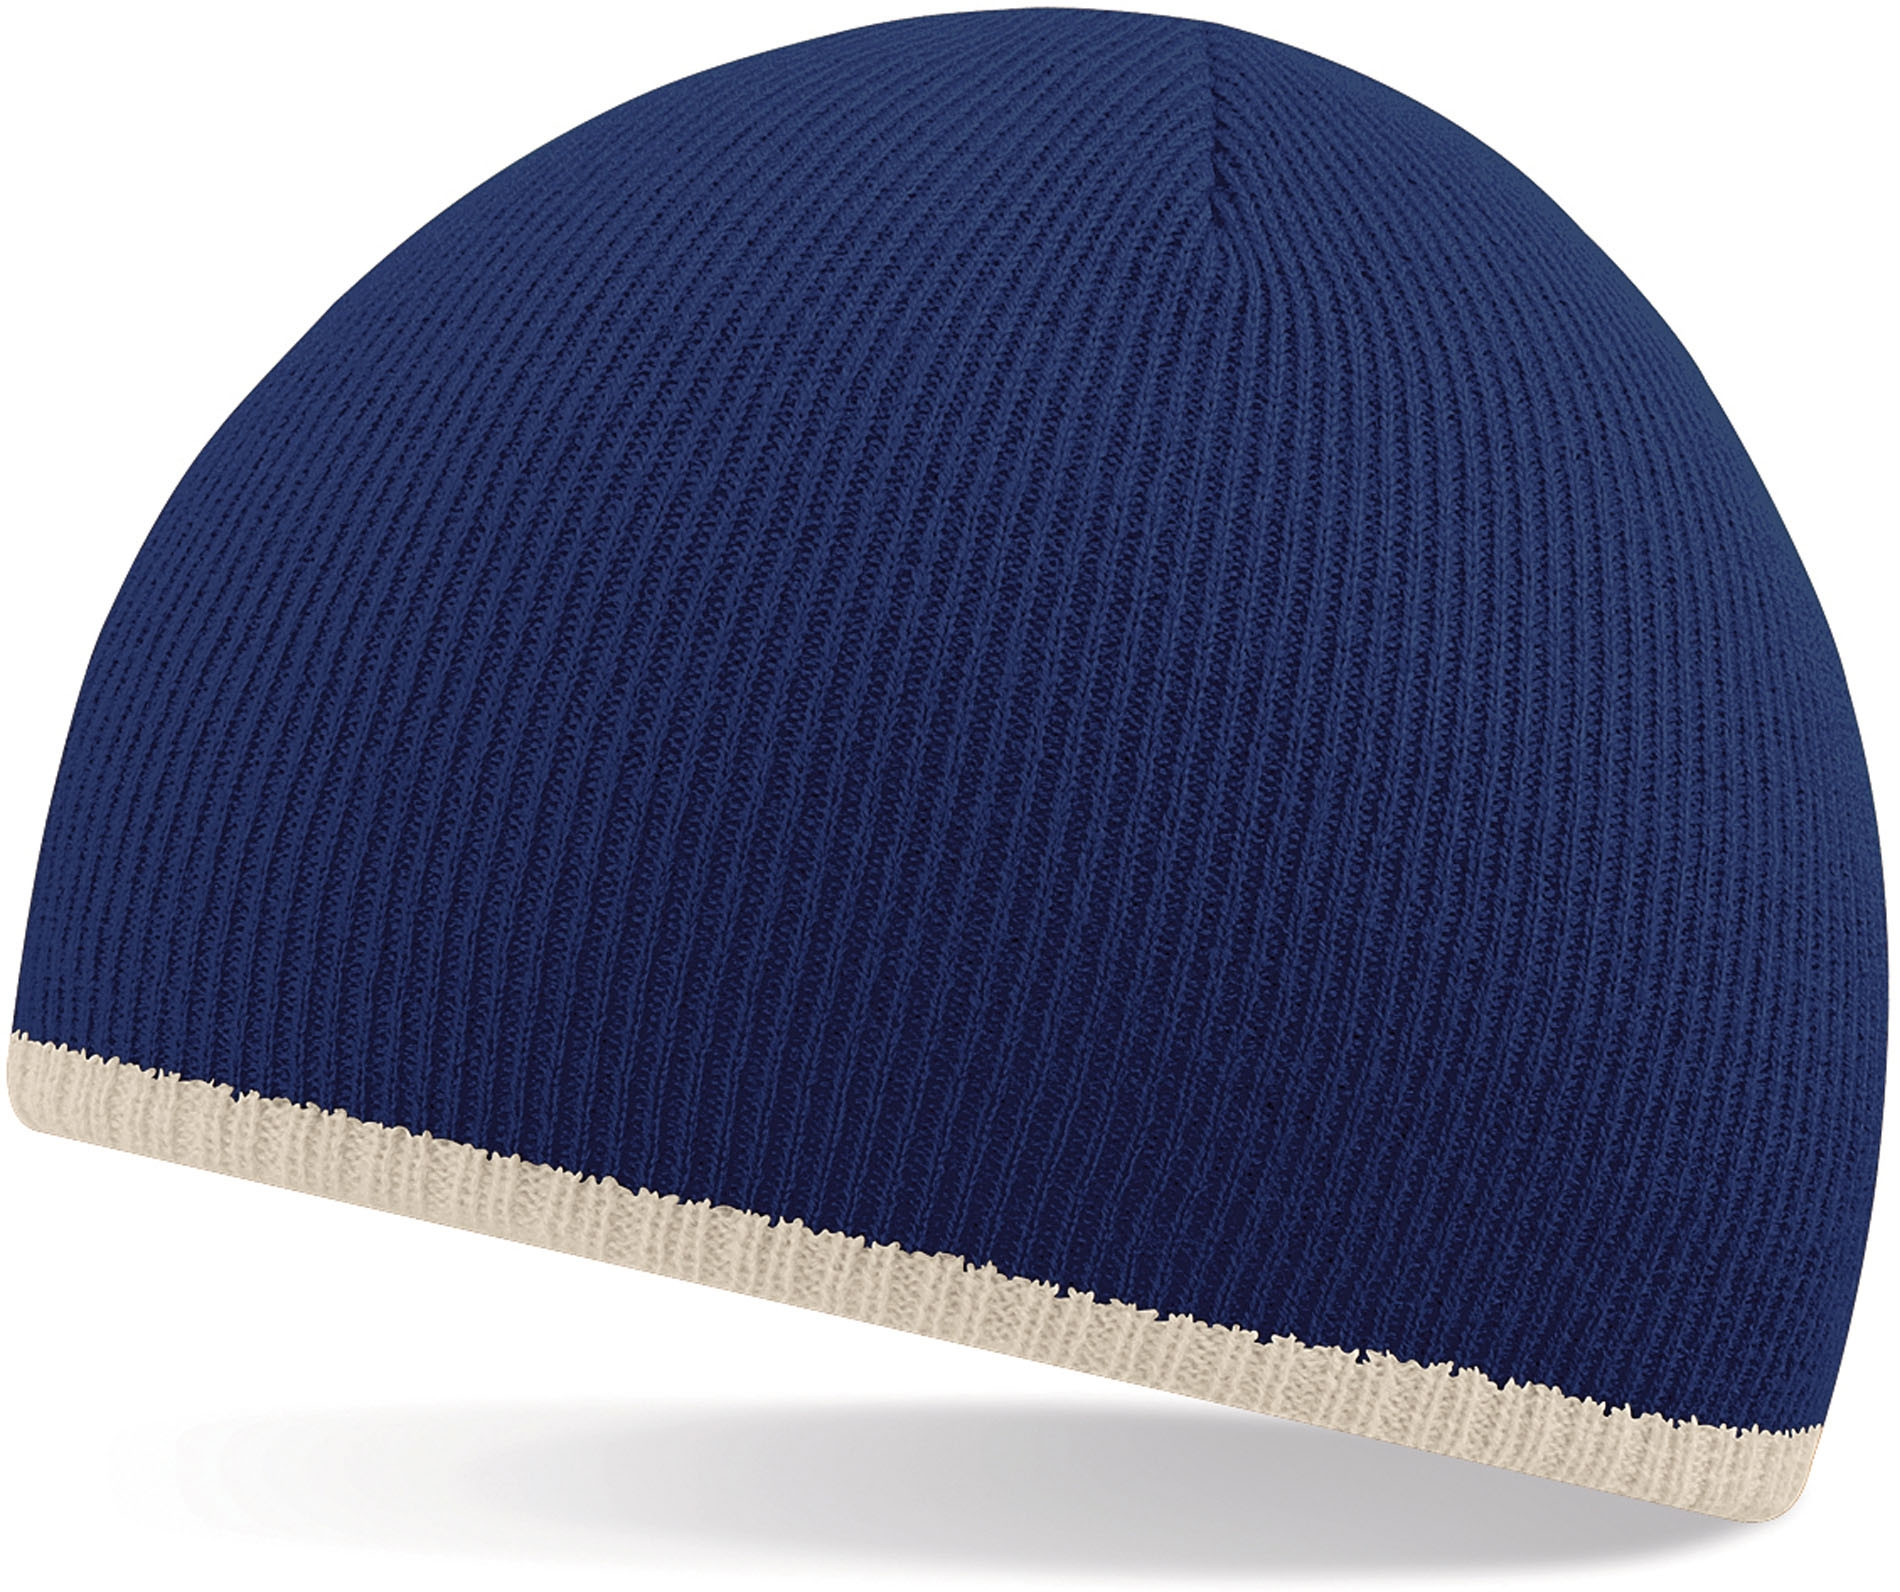 Bonnet bicolore French Navy / Stone Bleu